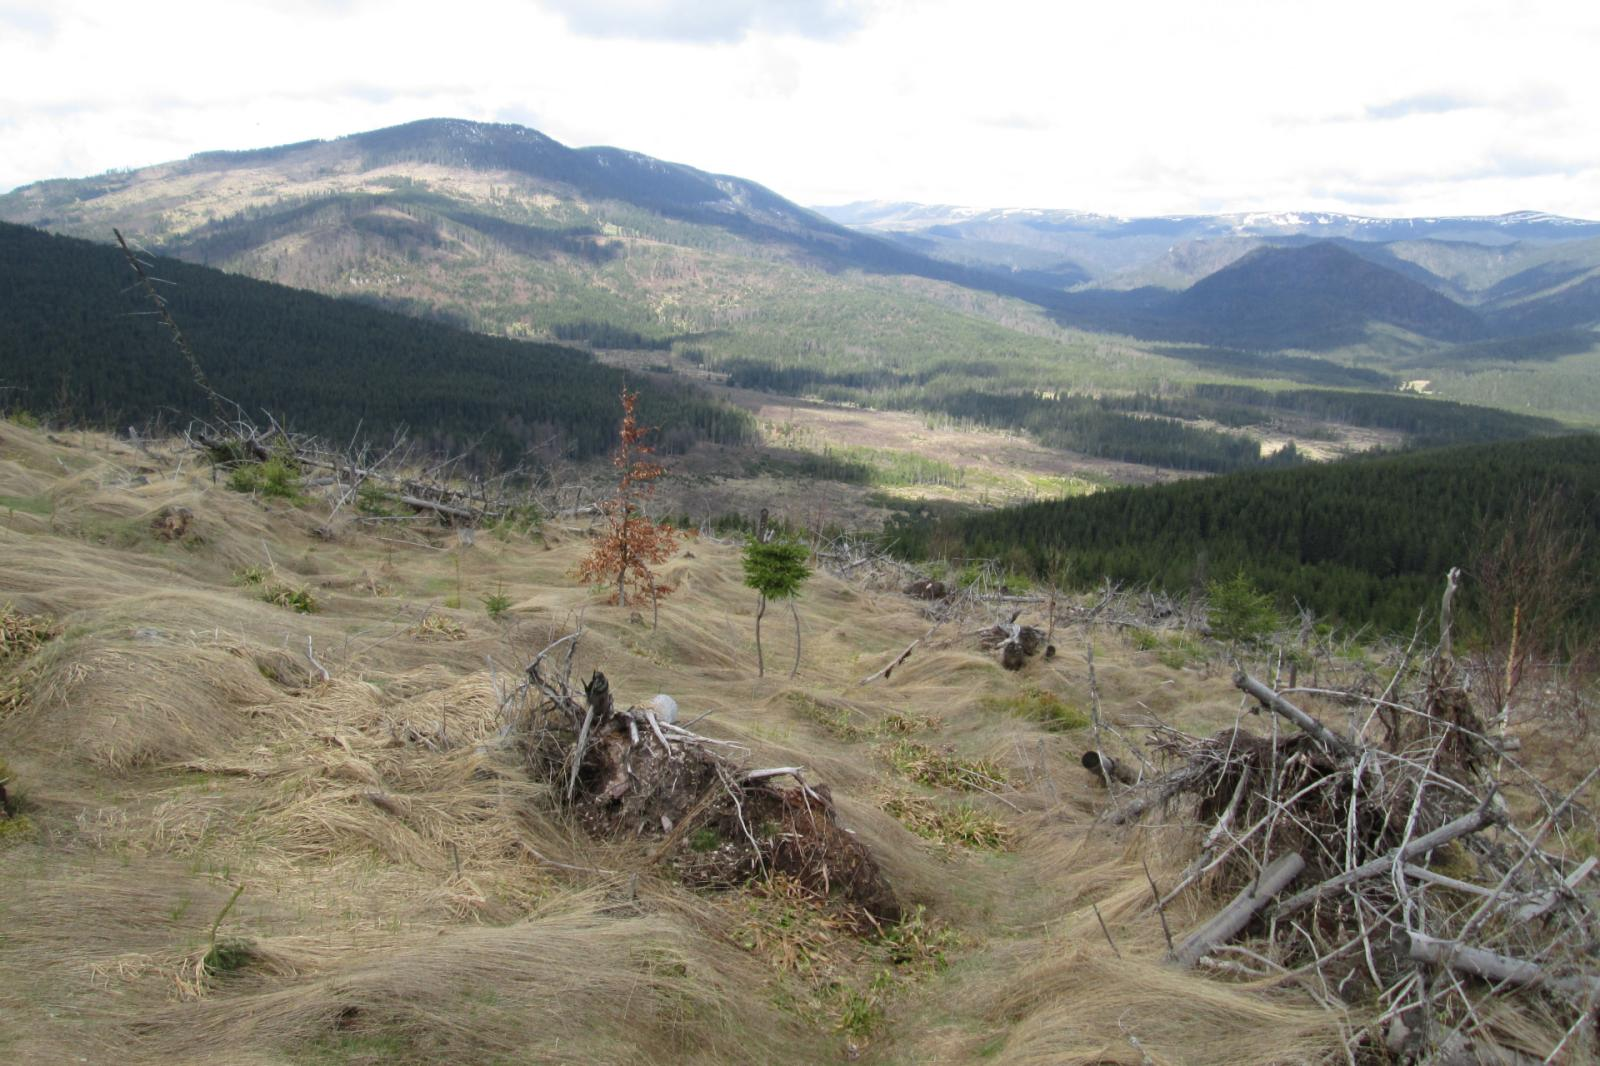 Of the 38 million cubic meters of forest lost to Romania's logging industry each year, only 18 million are licensed and accounted for.